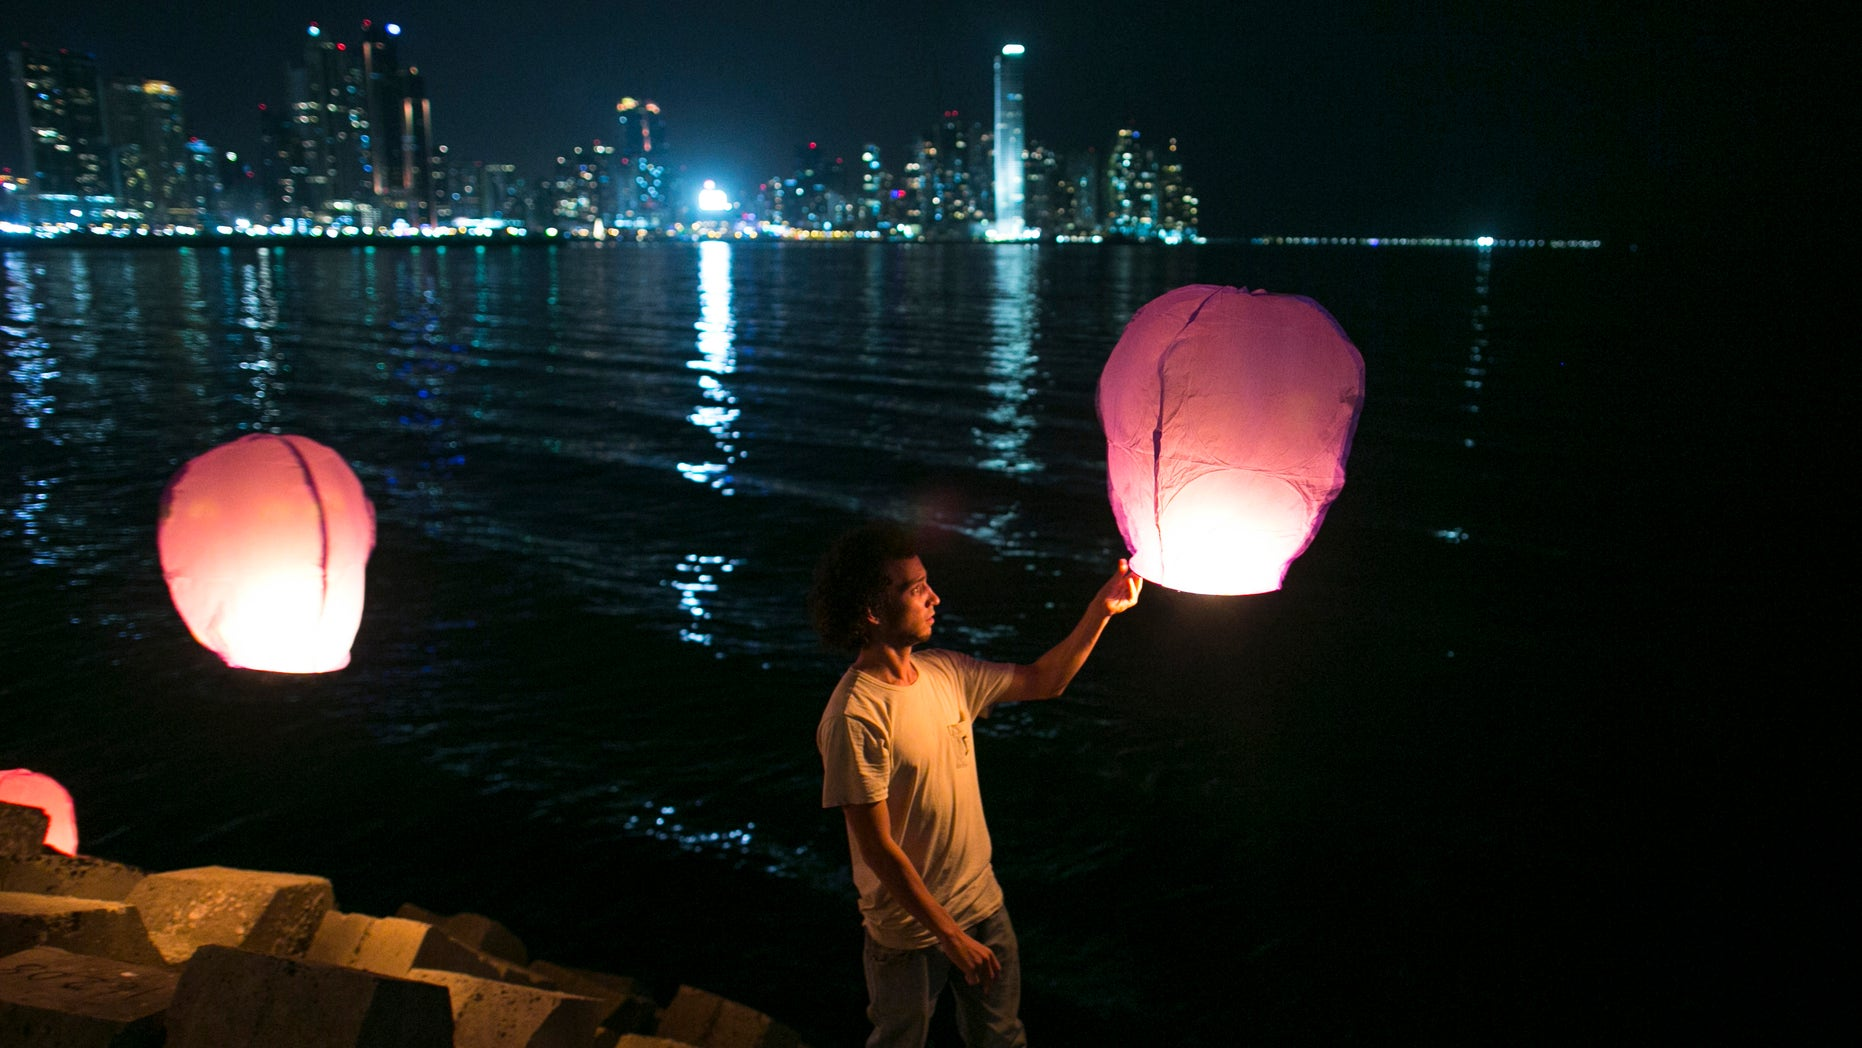 People prepare to release paper lanterns in the Panama City Bay as part of a public event held as a tribute to the victims of the US invasion of  Panama one day before the 25th anniversary of the military operation in Panama City, Friday, Dec. 19, 2014. On Dec. 20, 1989, US armed forces in an operation code-named Just Cause, invaded Panama to overthrow Panama's dictator Manuel Antonio Noriega and the Panamanian Defense Forces were dissolved.  (AP Photo/Tito Herrera)